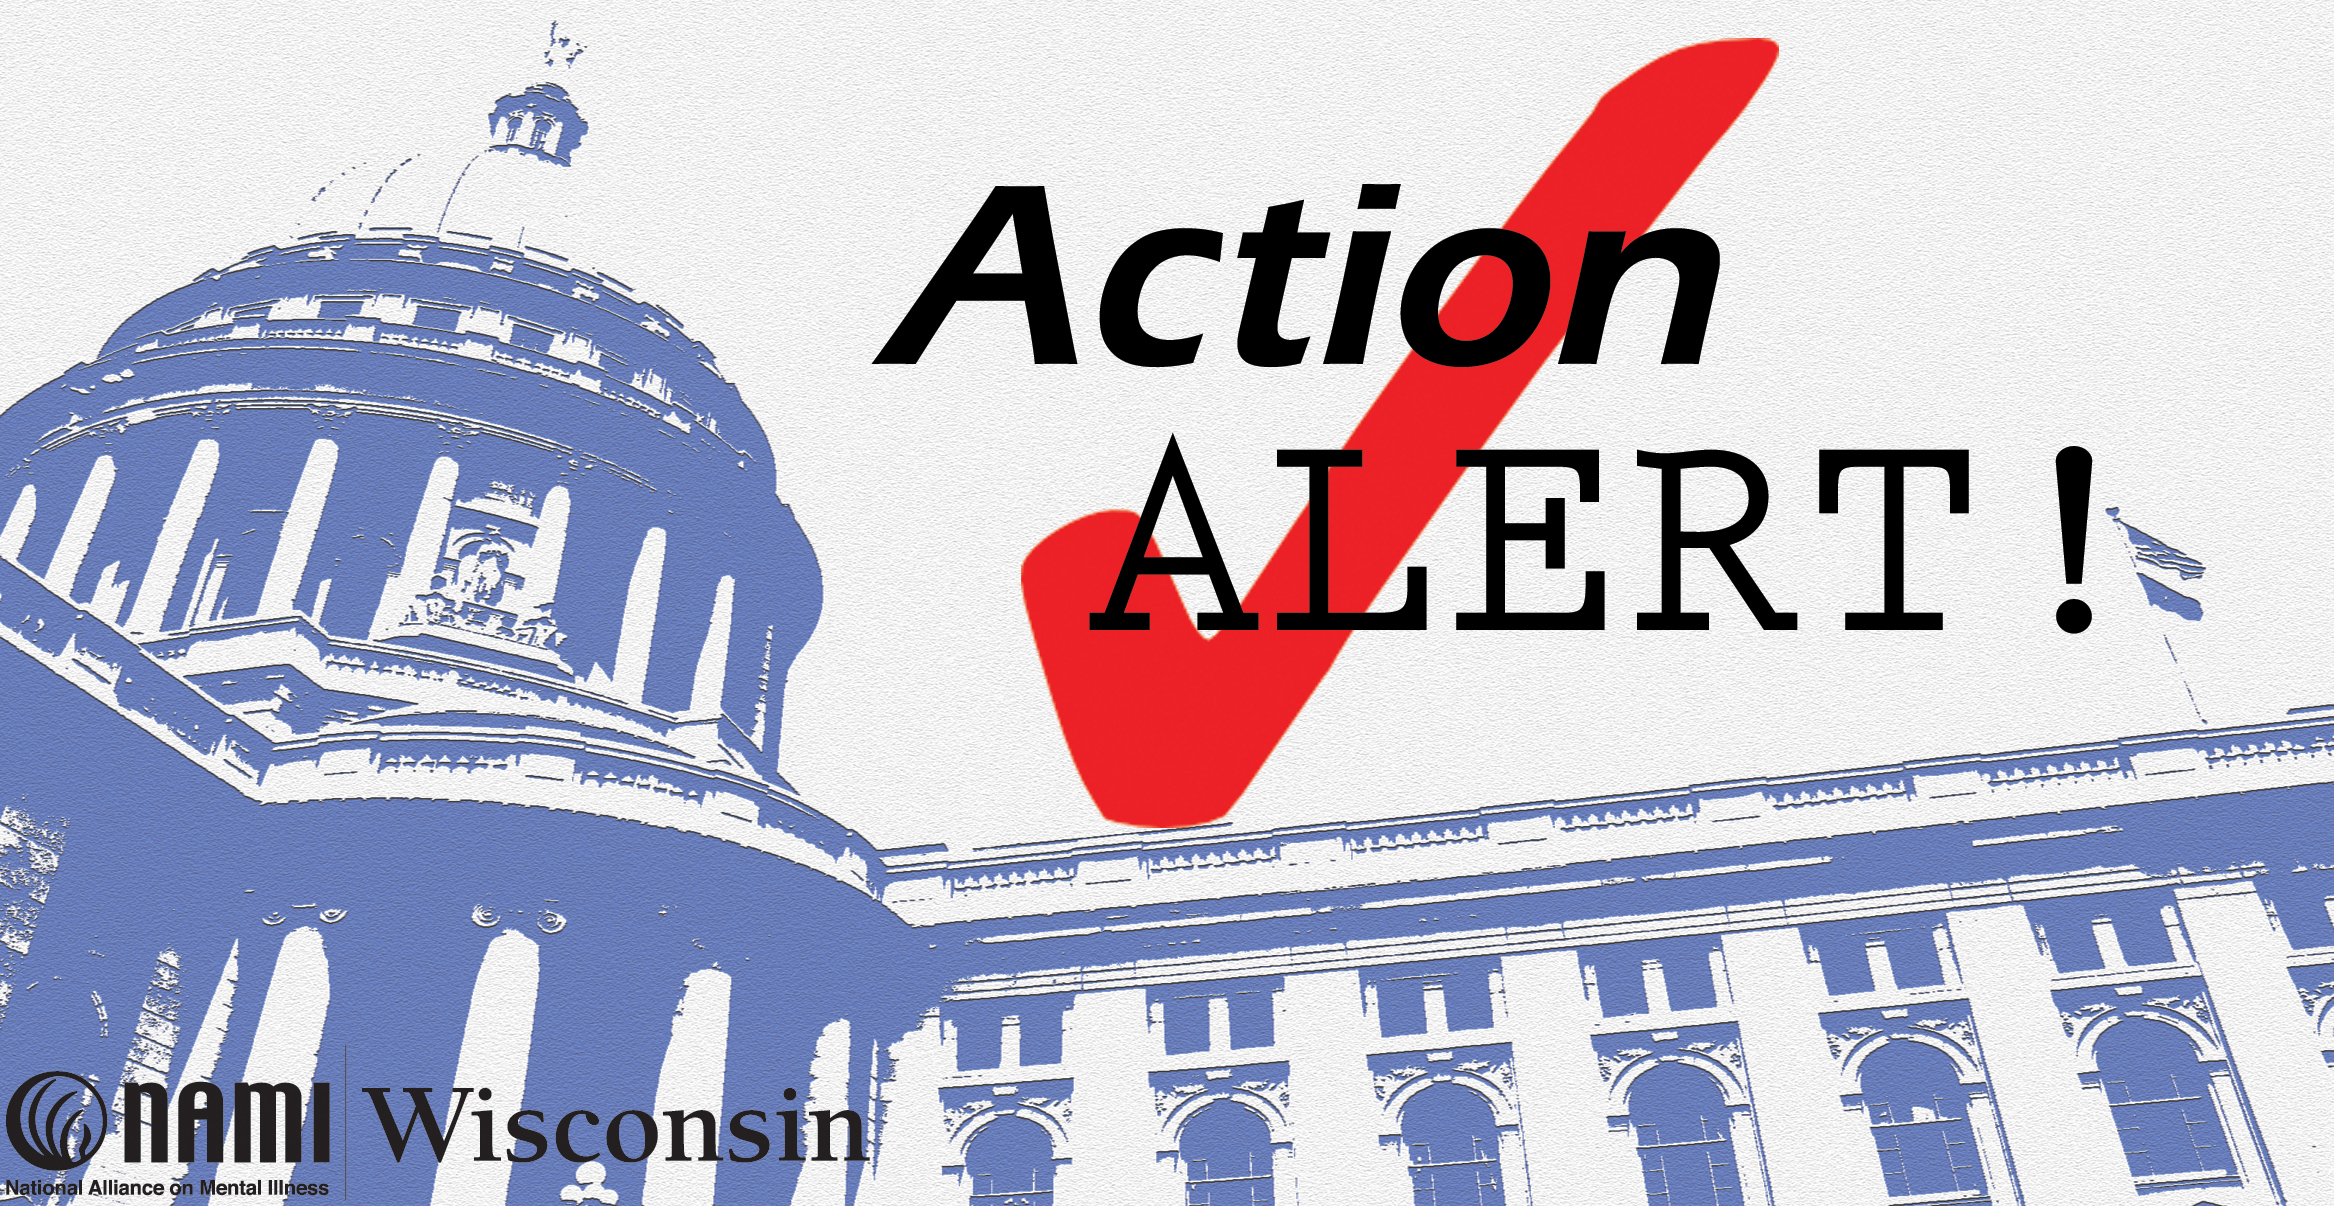 NAMI Wisconsin Action Alert Image